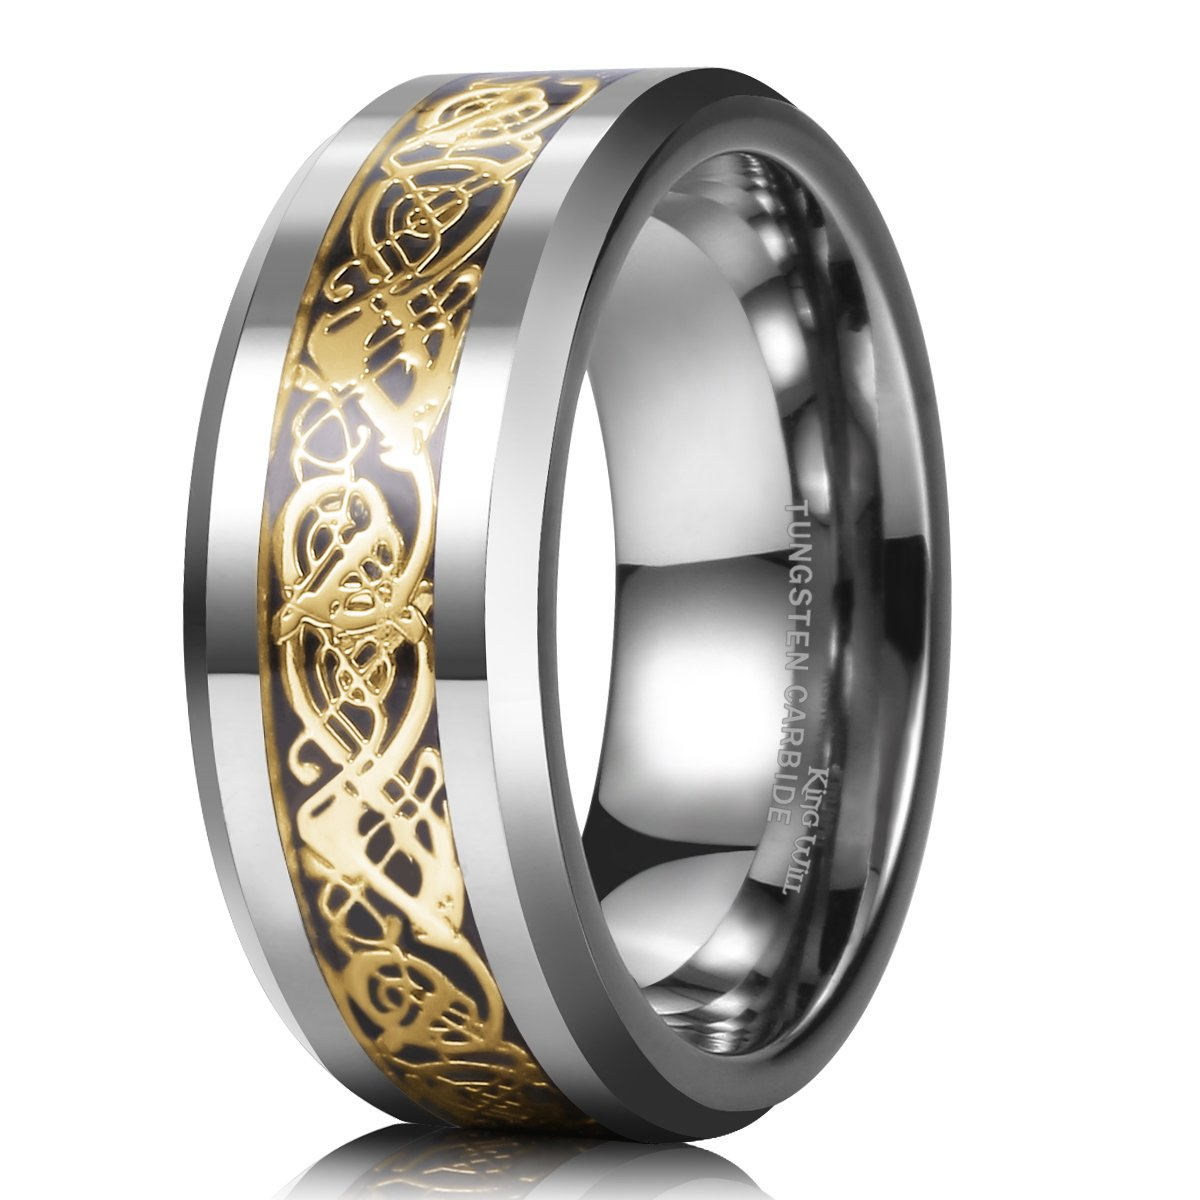 King Will DRAGON 8mm Gold Celtic Dragon Tungsten Carbide Mens Wedding Band Ring Comfort Fit King Will-R013